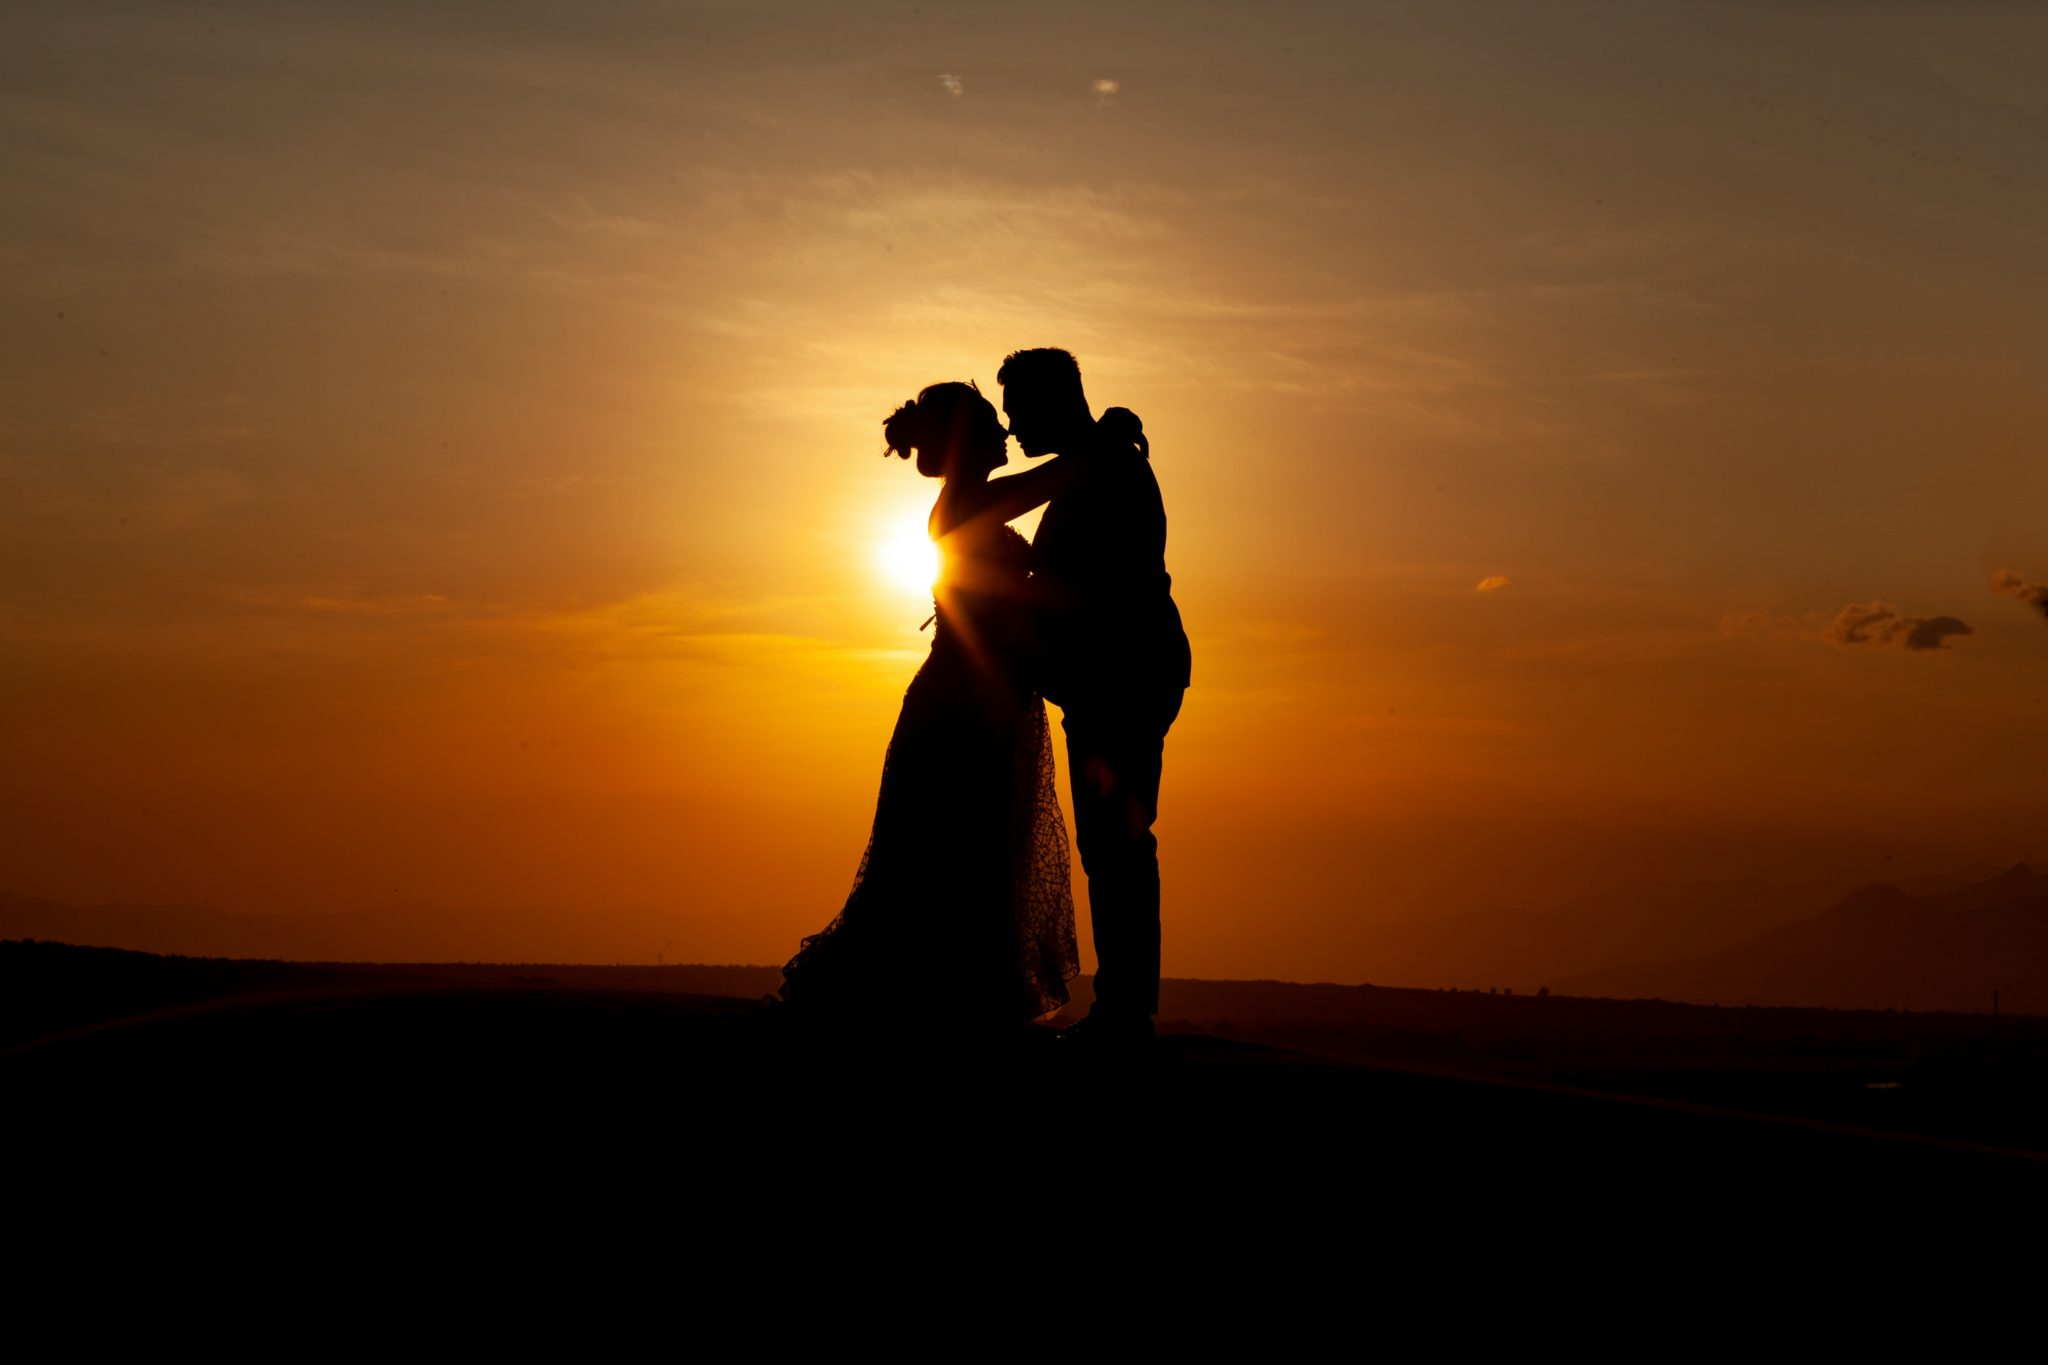 silhouette-of-couple-kissing-during-sunset-3998366